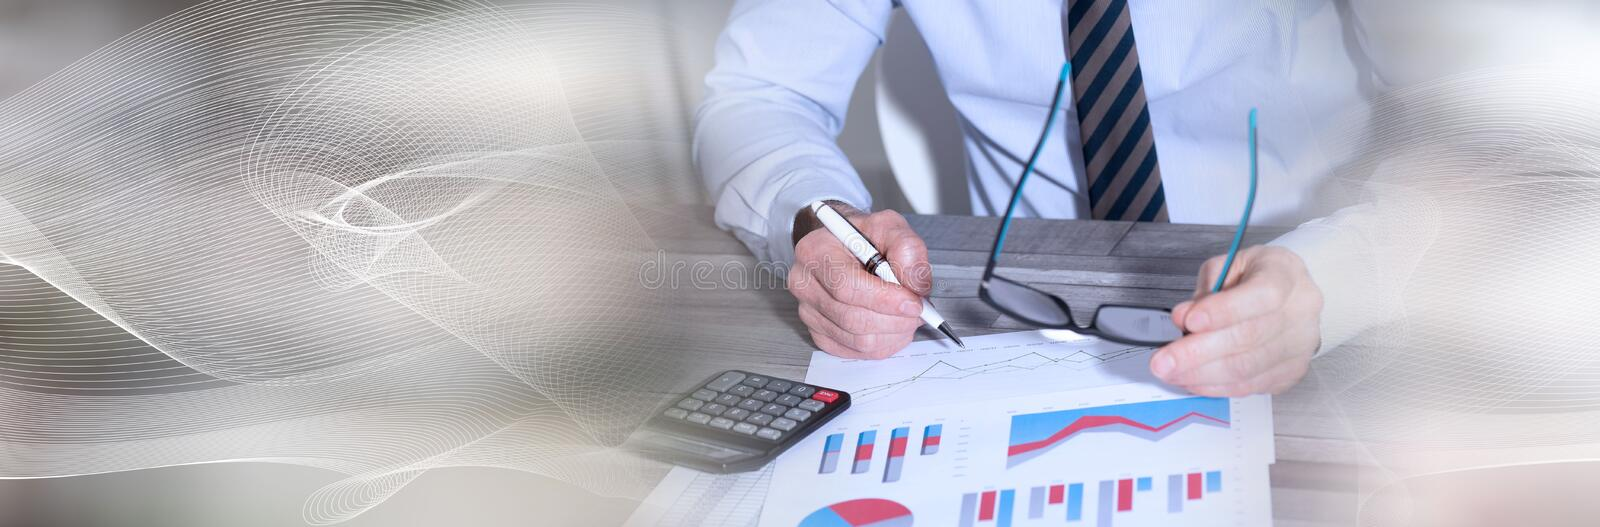 Accountant working on financial documents. panoramic banner. Accountant working on financial documents and using a calculator. panoramic banner royalty free stock photography